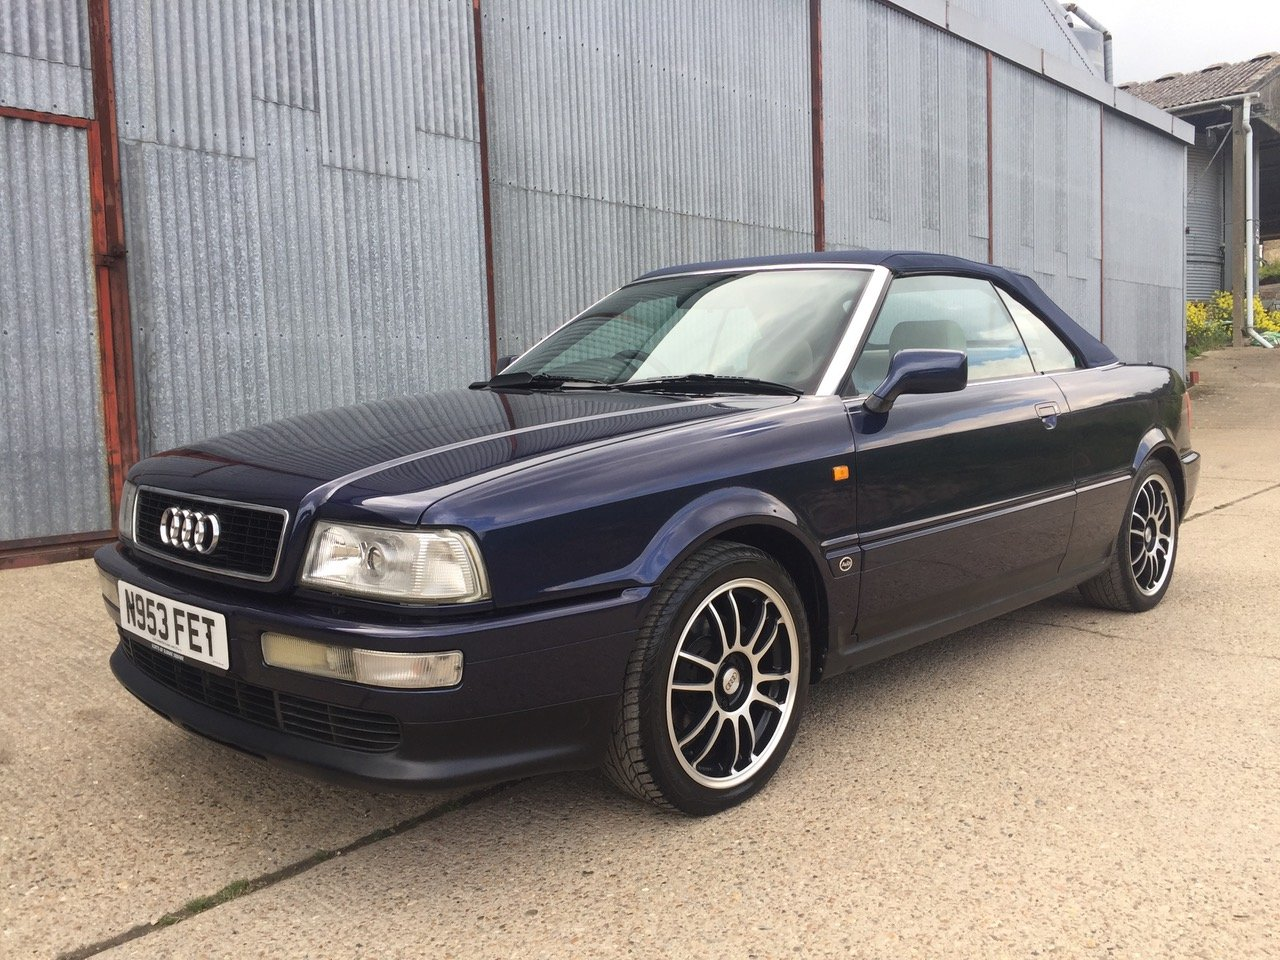 Superb 1996 Audi 80 Cabriolet 2.6 V6 Auto For Sale (picture 1 of 6)